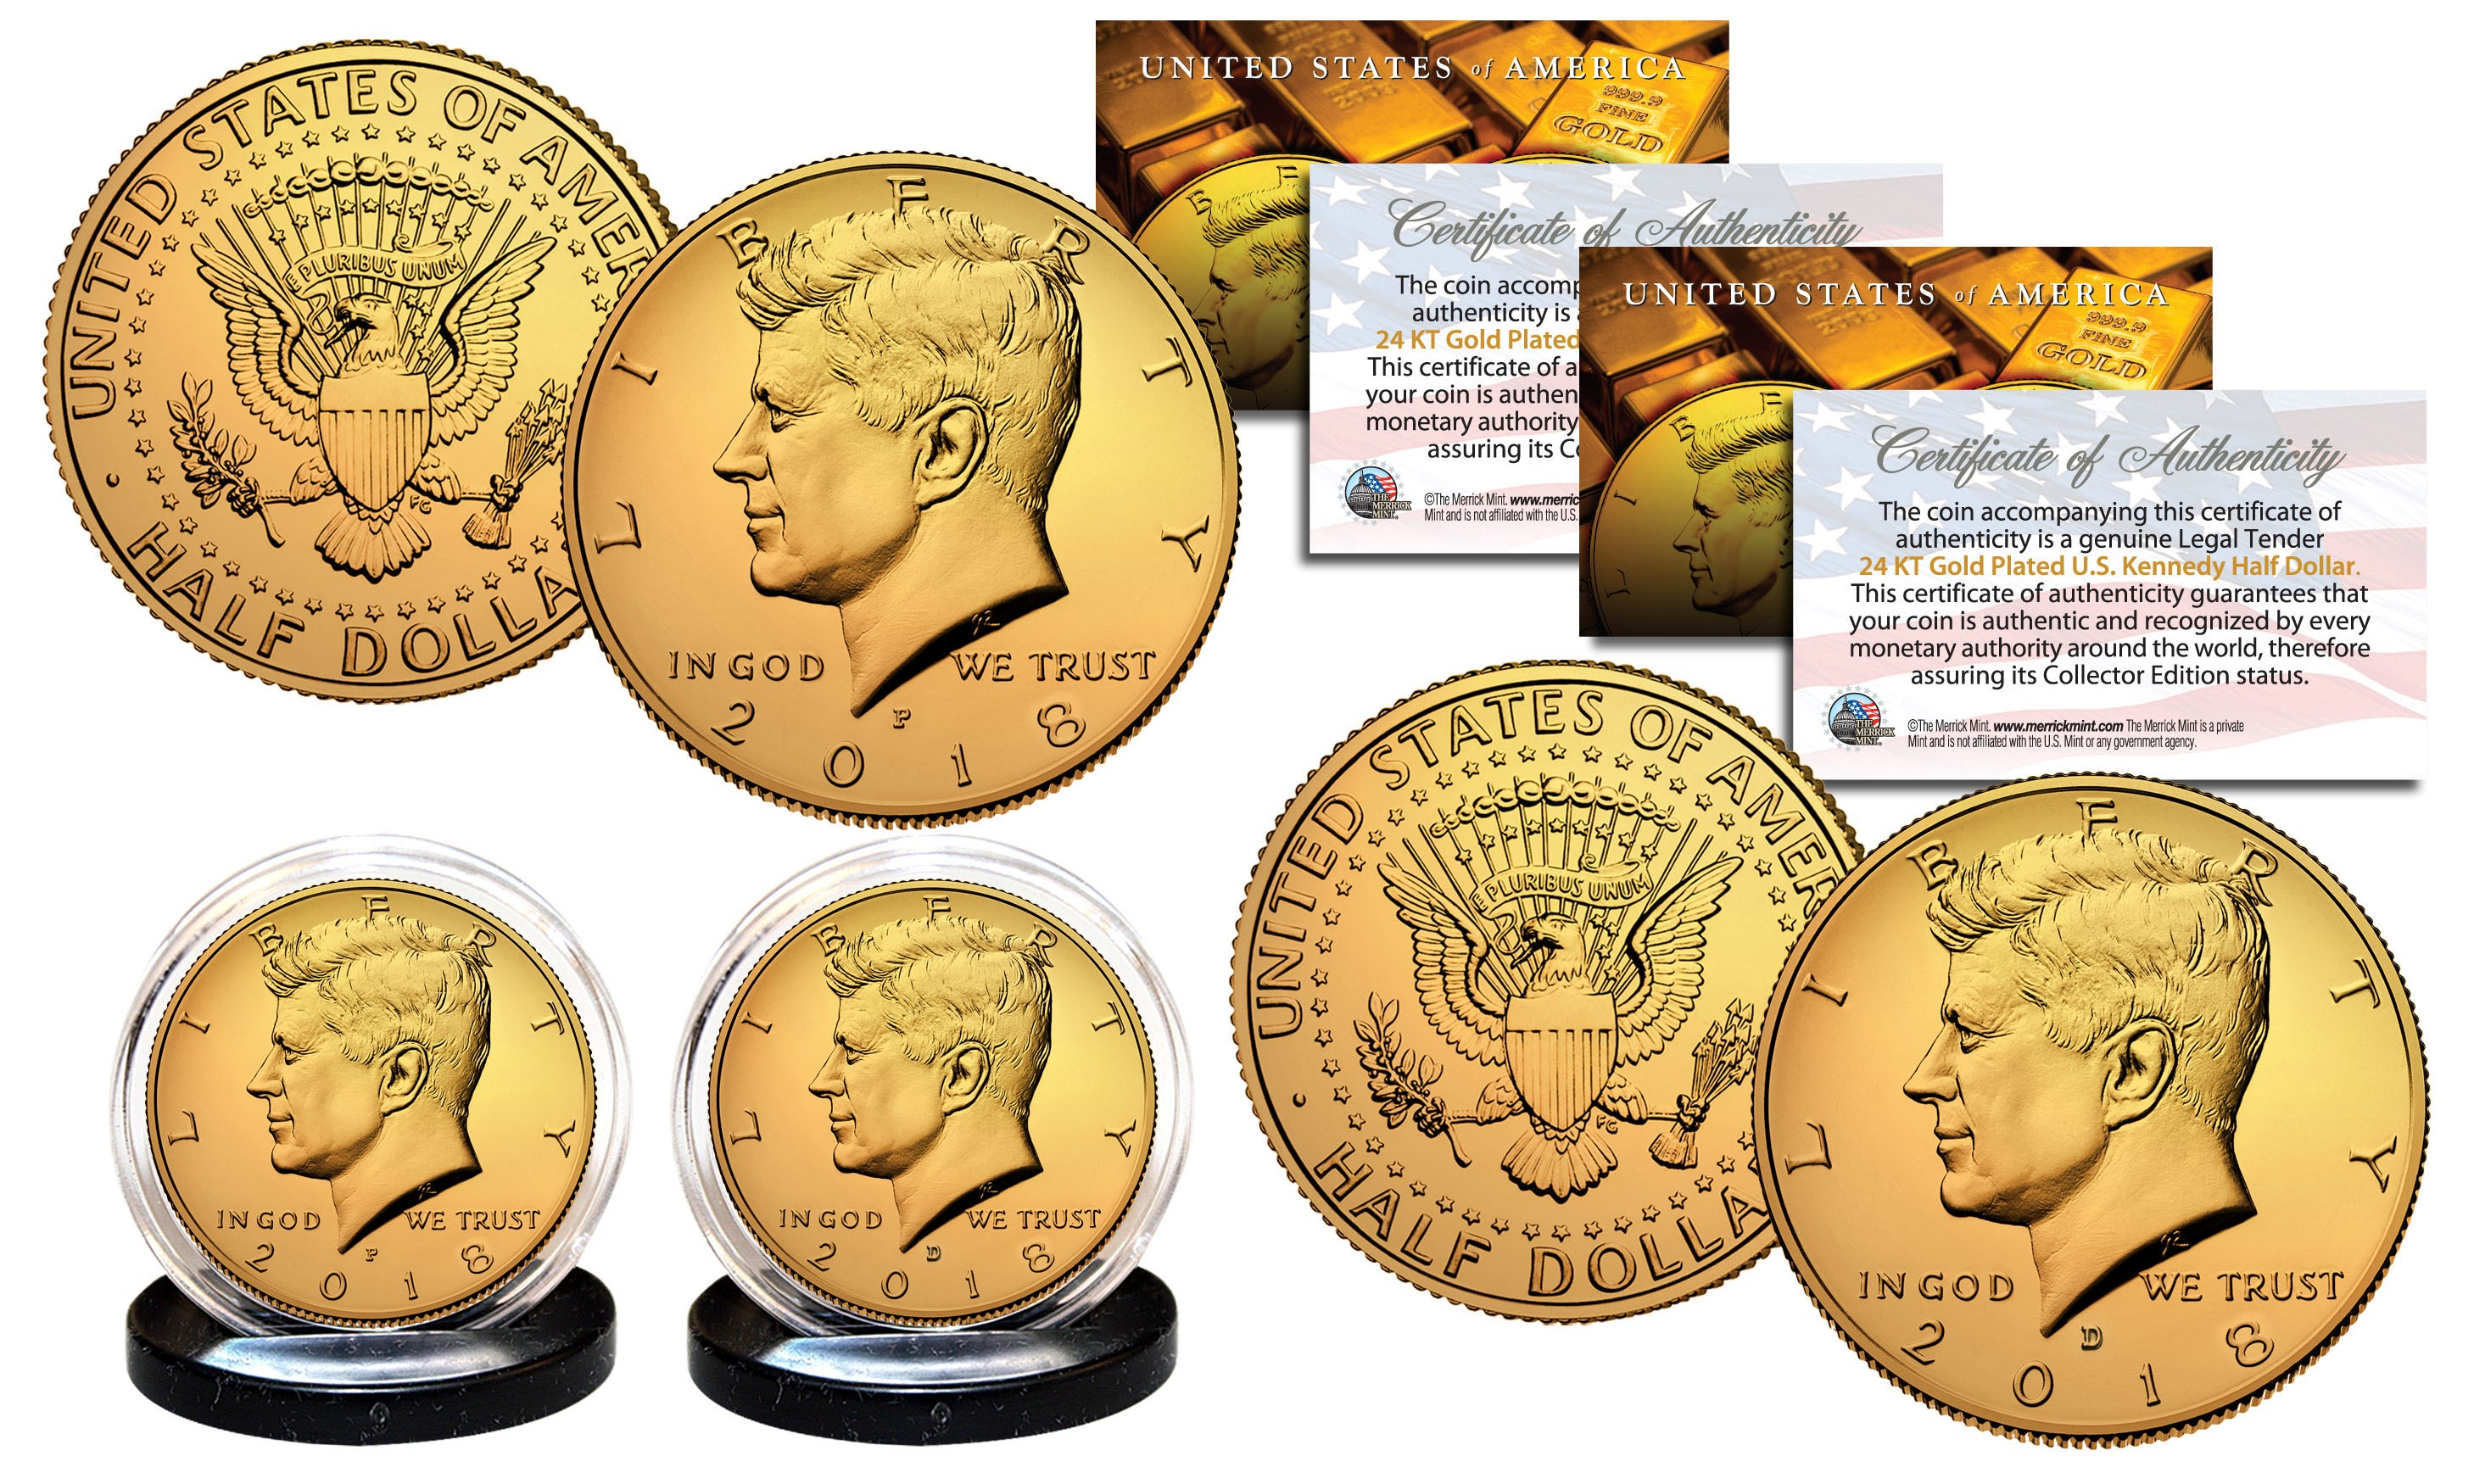 John F Kennedy 24K GOLD 2-Coin US duo Set with black velvet jewelry gift box